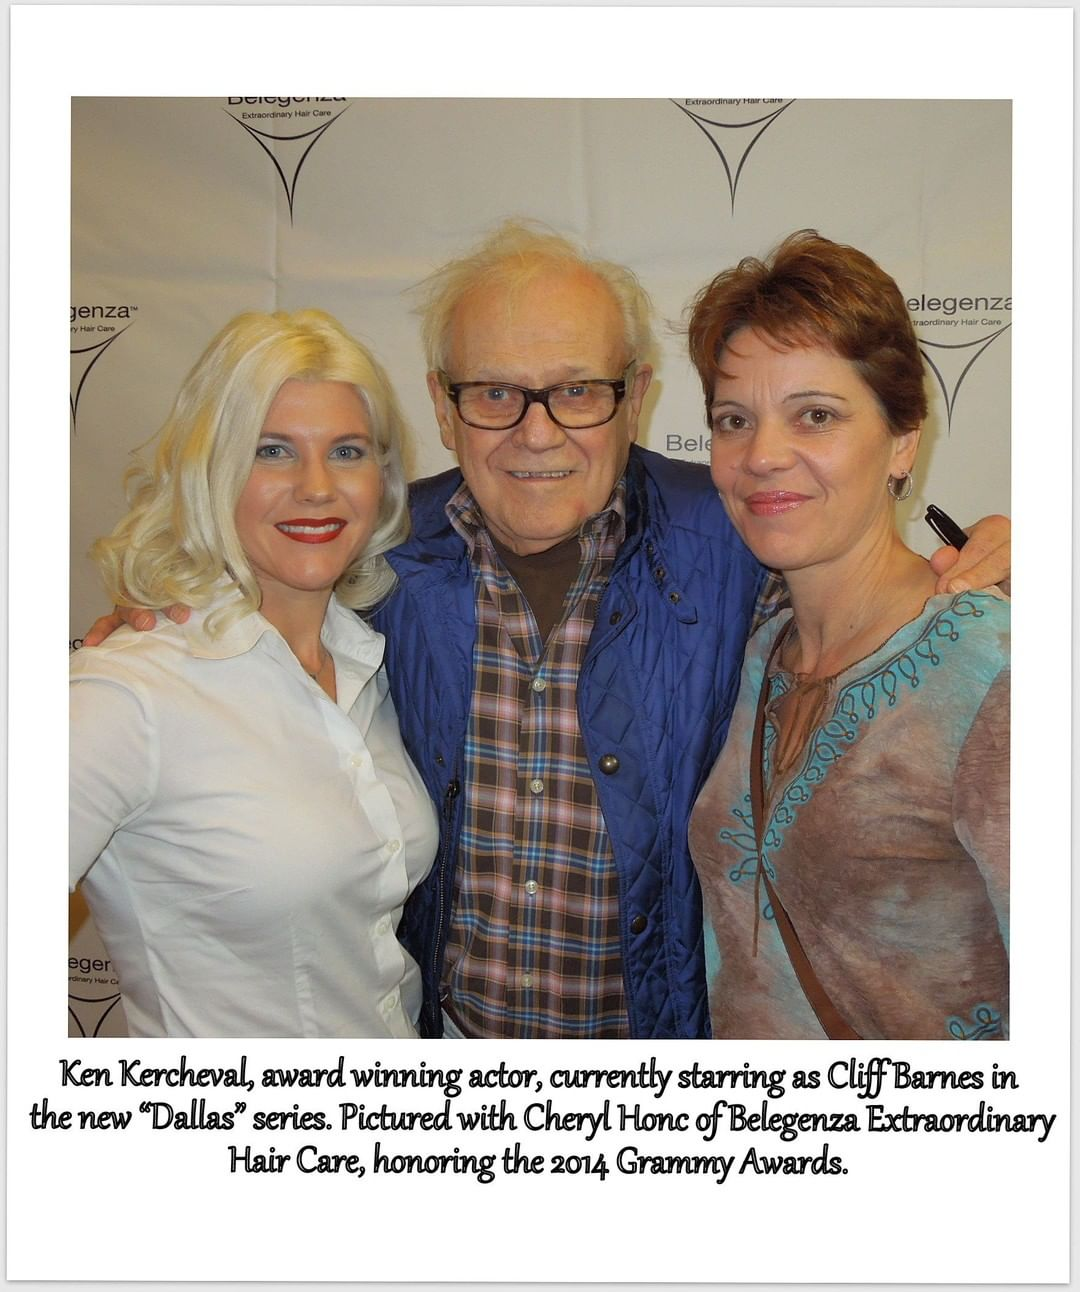 Ken Kercheval, acteur primé, sur la photo avec Cheryl Honc de Beleganza Extraordinary Hair Care, durant les Grammy Awards de 2014. | Webstagram/@belegenza